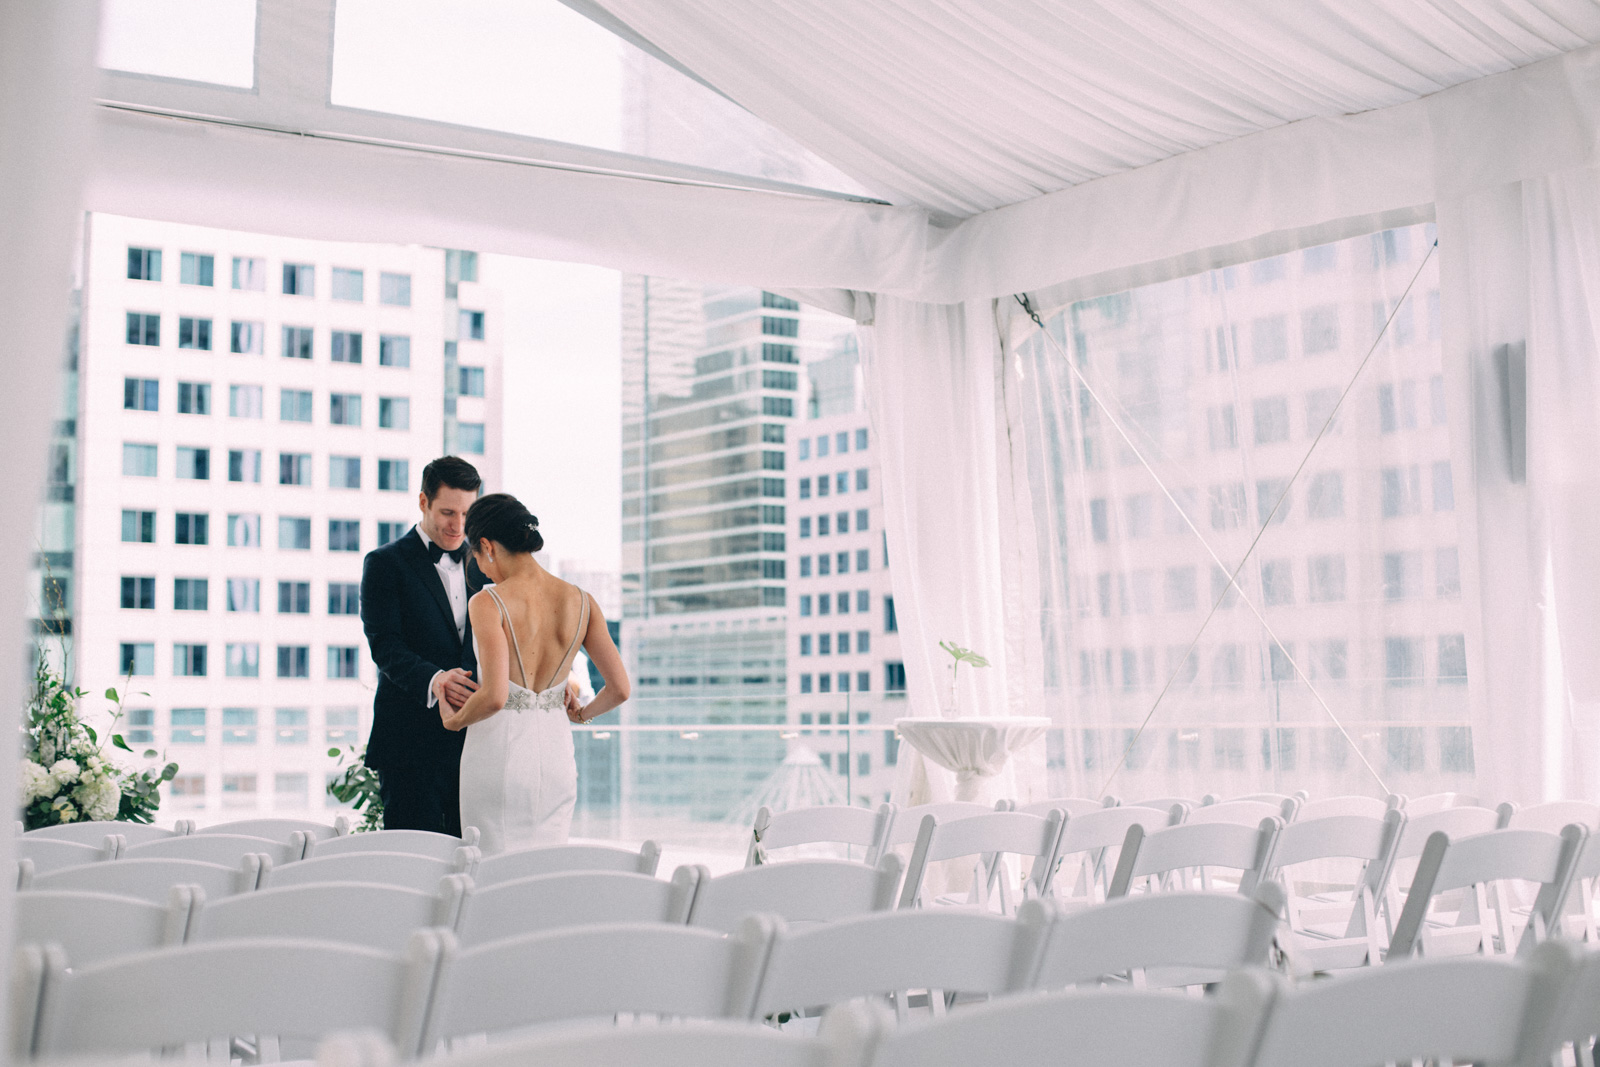 Malaparte-wedding-photography-Toronto-by-Sam-Wong-of-Artanis-Collective_26.jpg